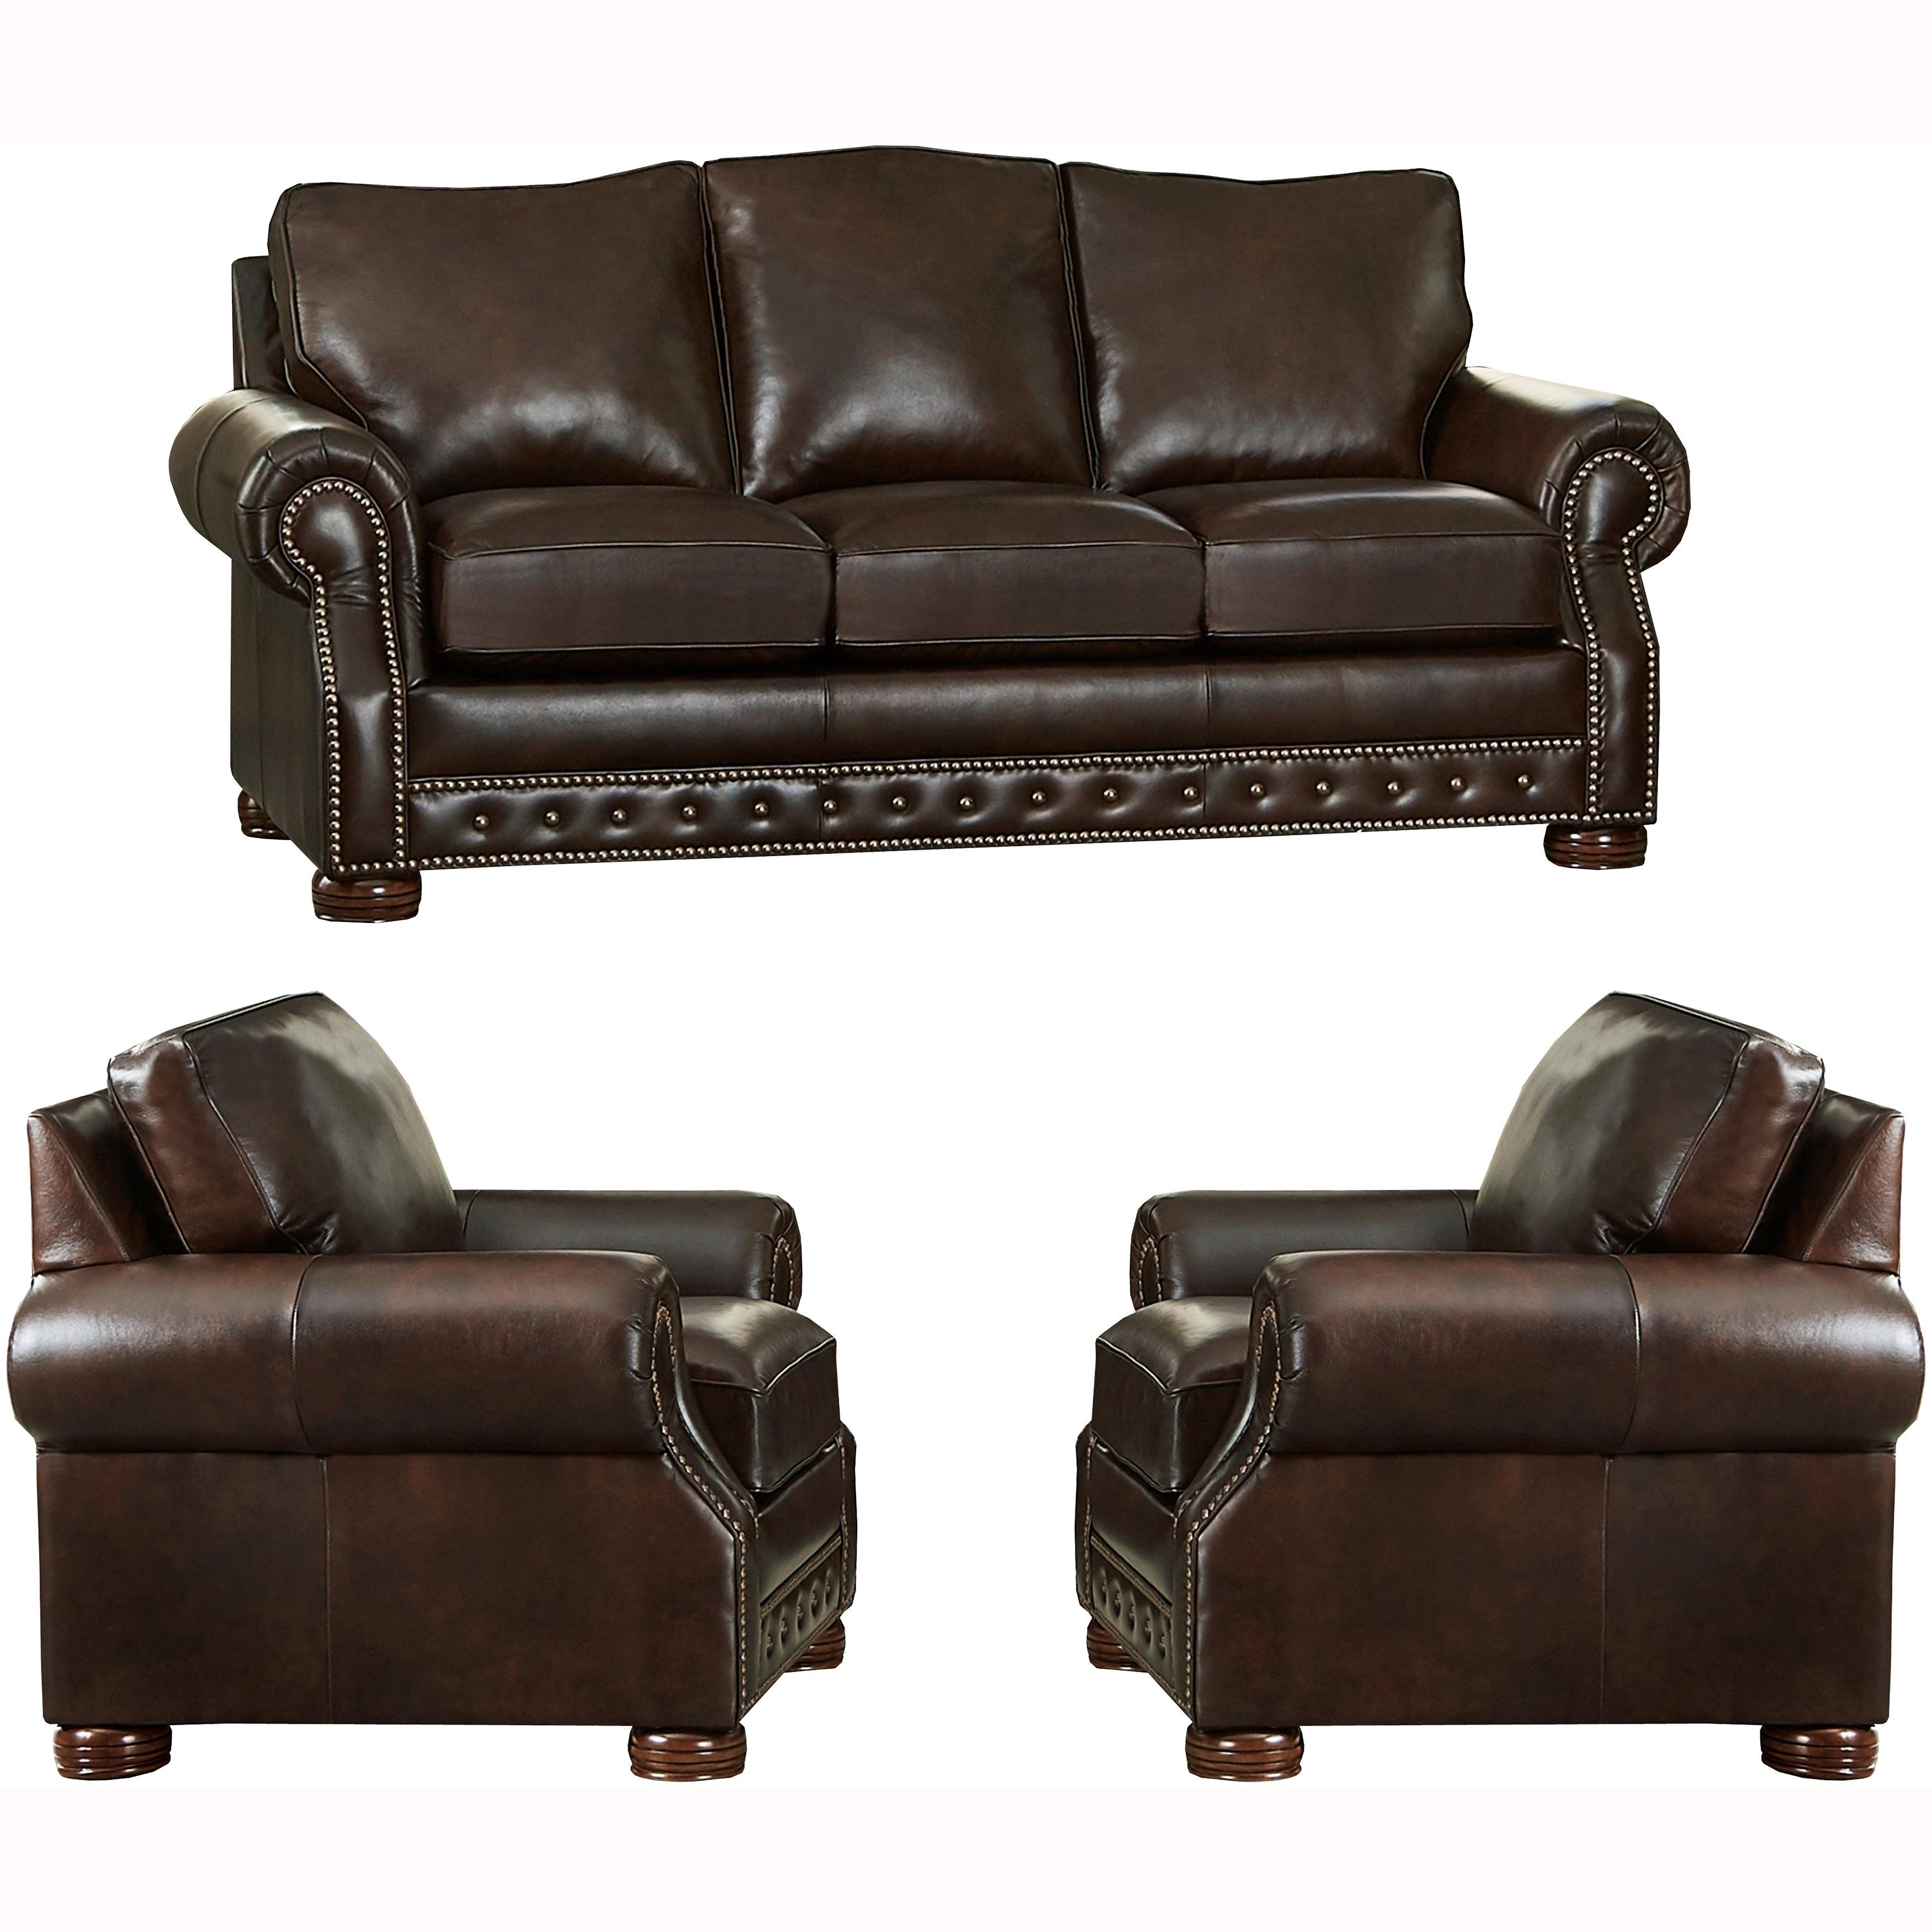 Shop Made in USA Porto Top Grain Leather Sofa and Two Chairs - On ...